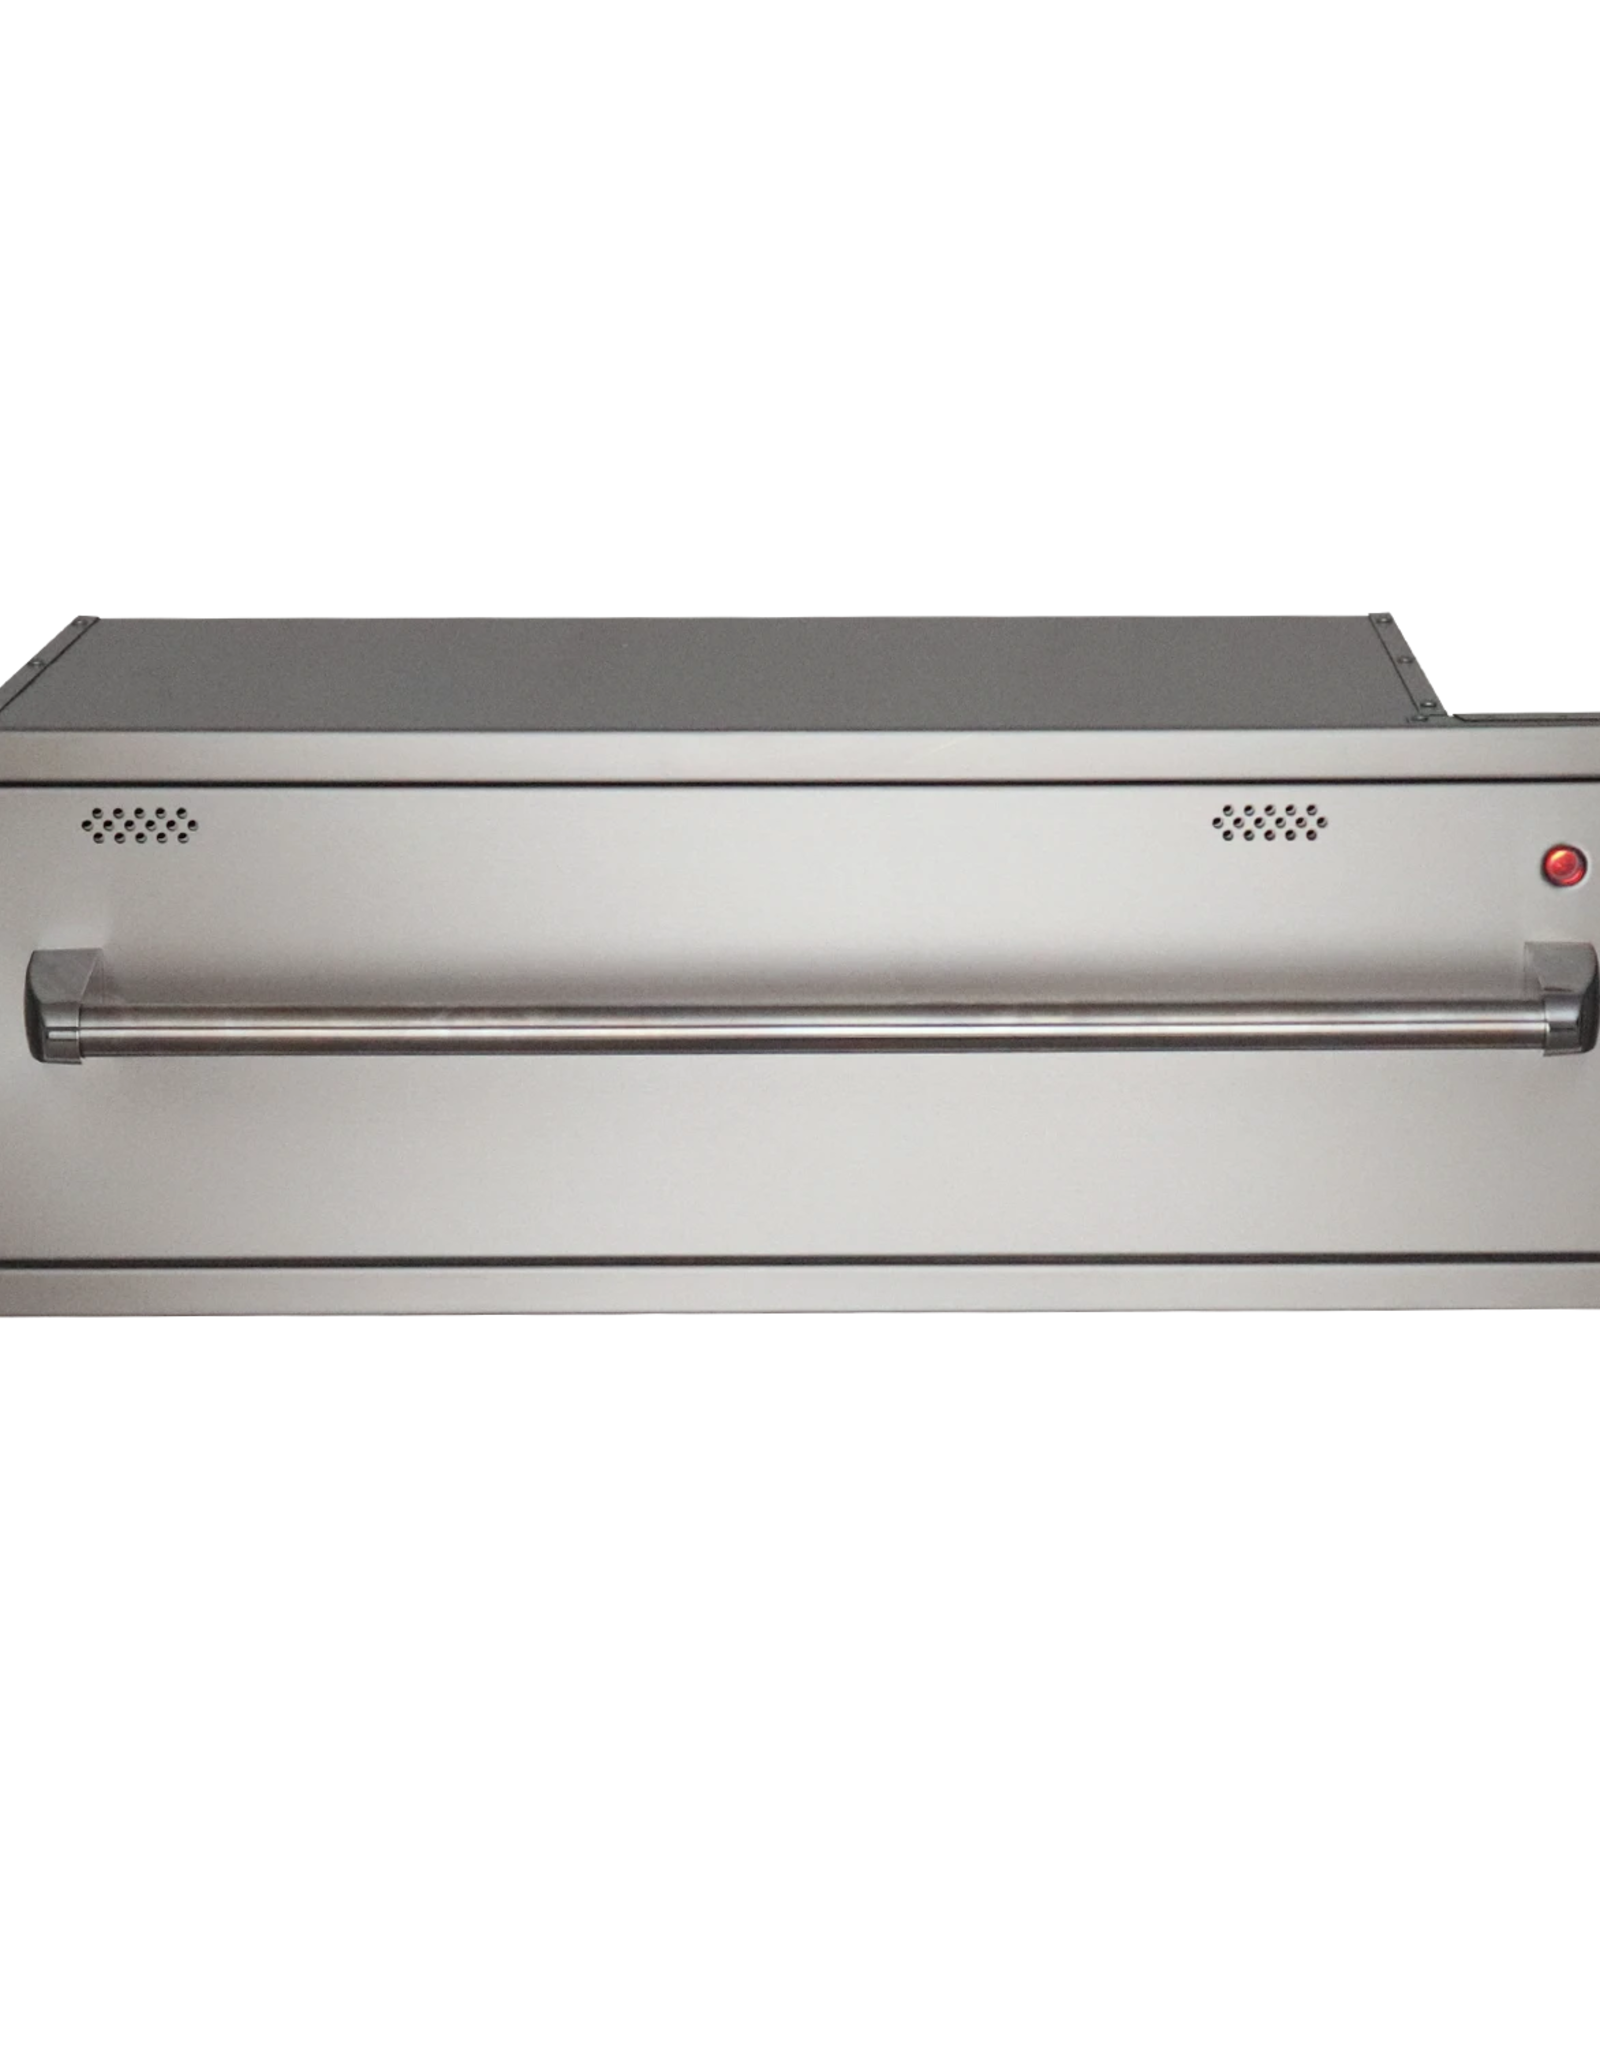 Renaissance Cooking Systems Renaissance Cooking Systems Warming Drawer - RWD1